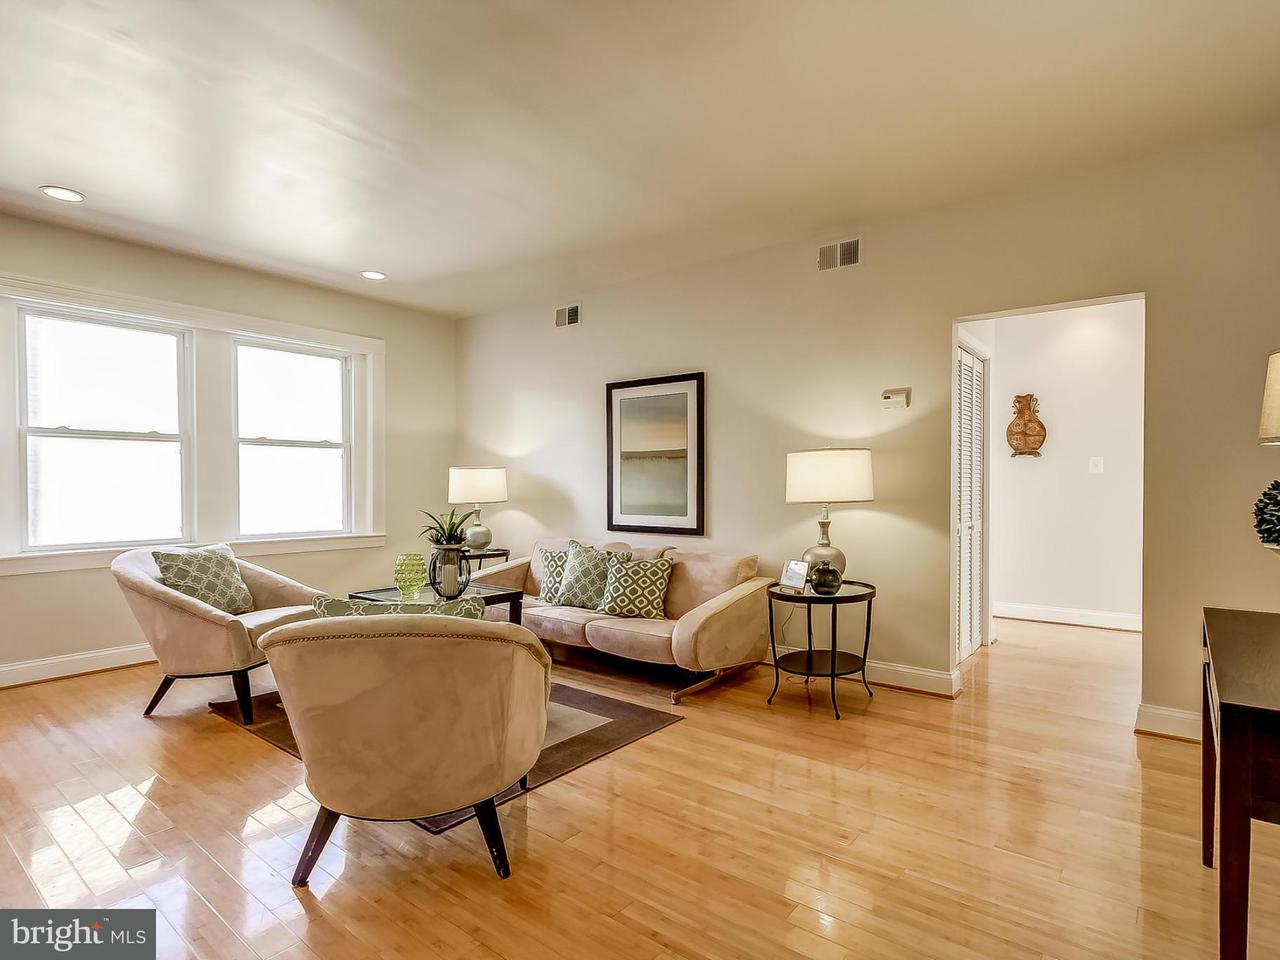 Condominium for Sale at 31 Kennedy St NW #201 Washington, District Of Columbia 20011 United States